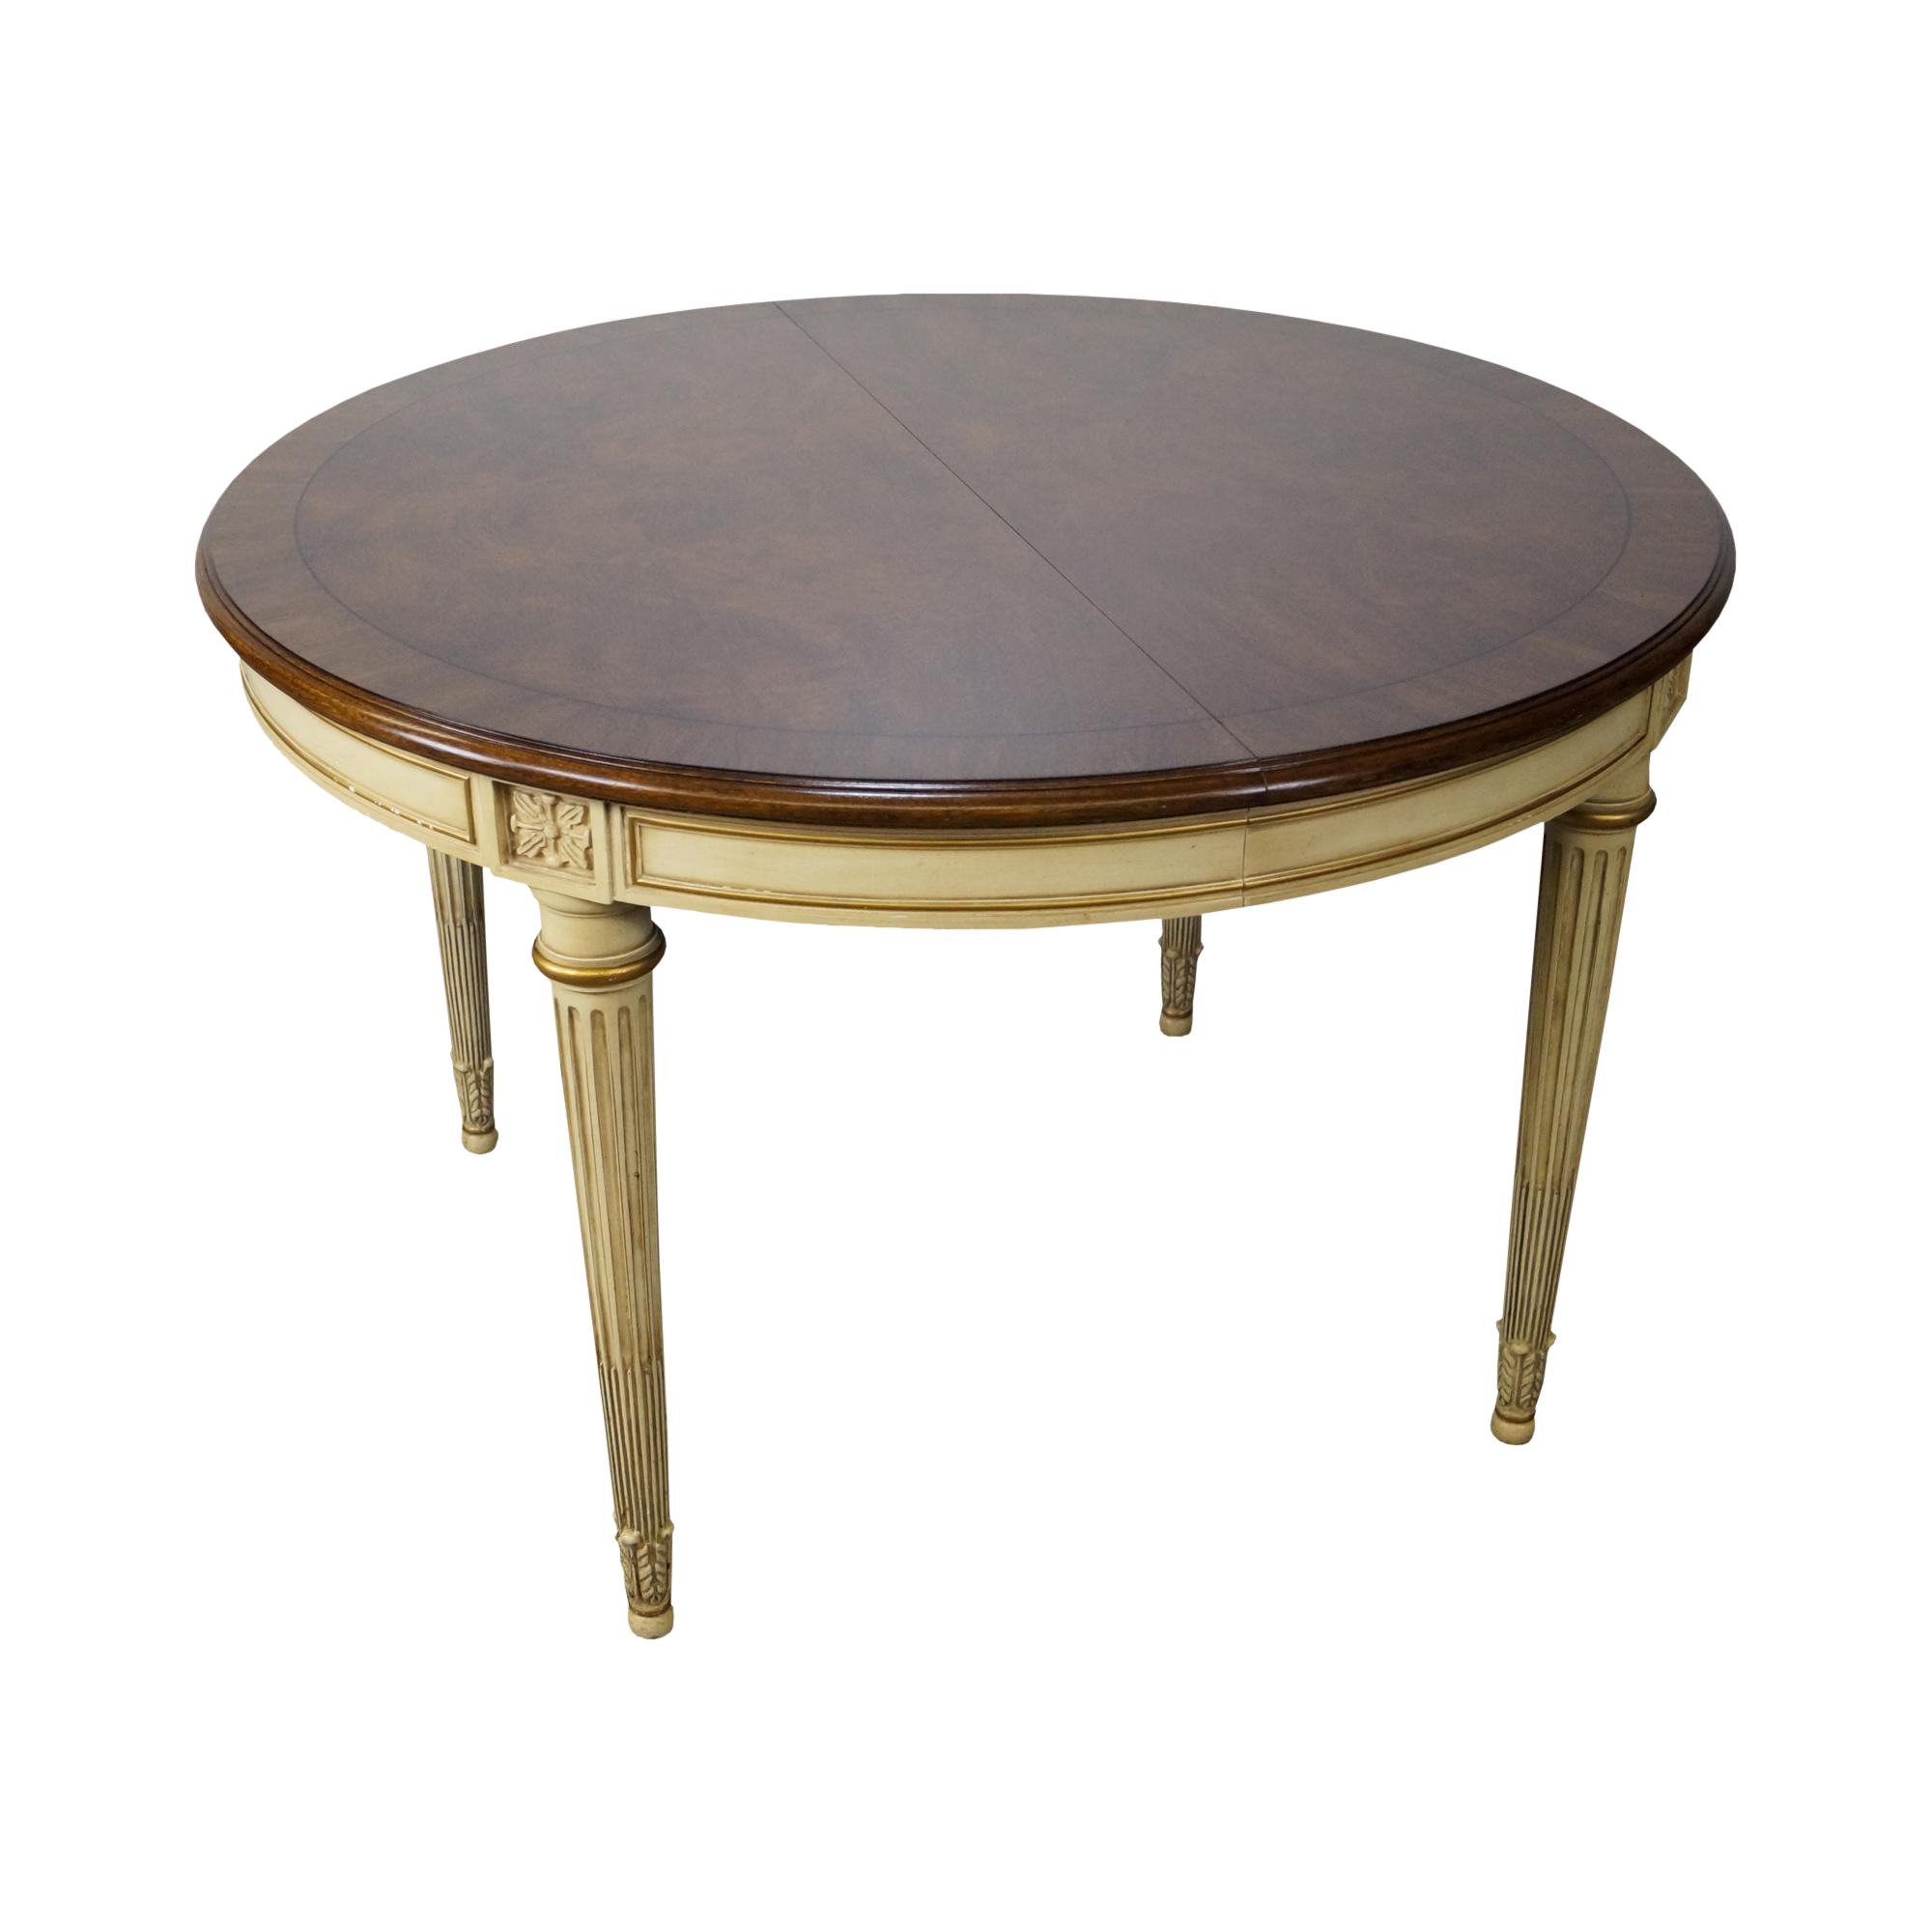 Karges Vintage French Louis XVI Style Round Walnut Dining Table